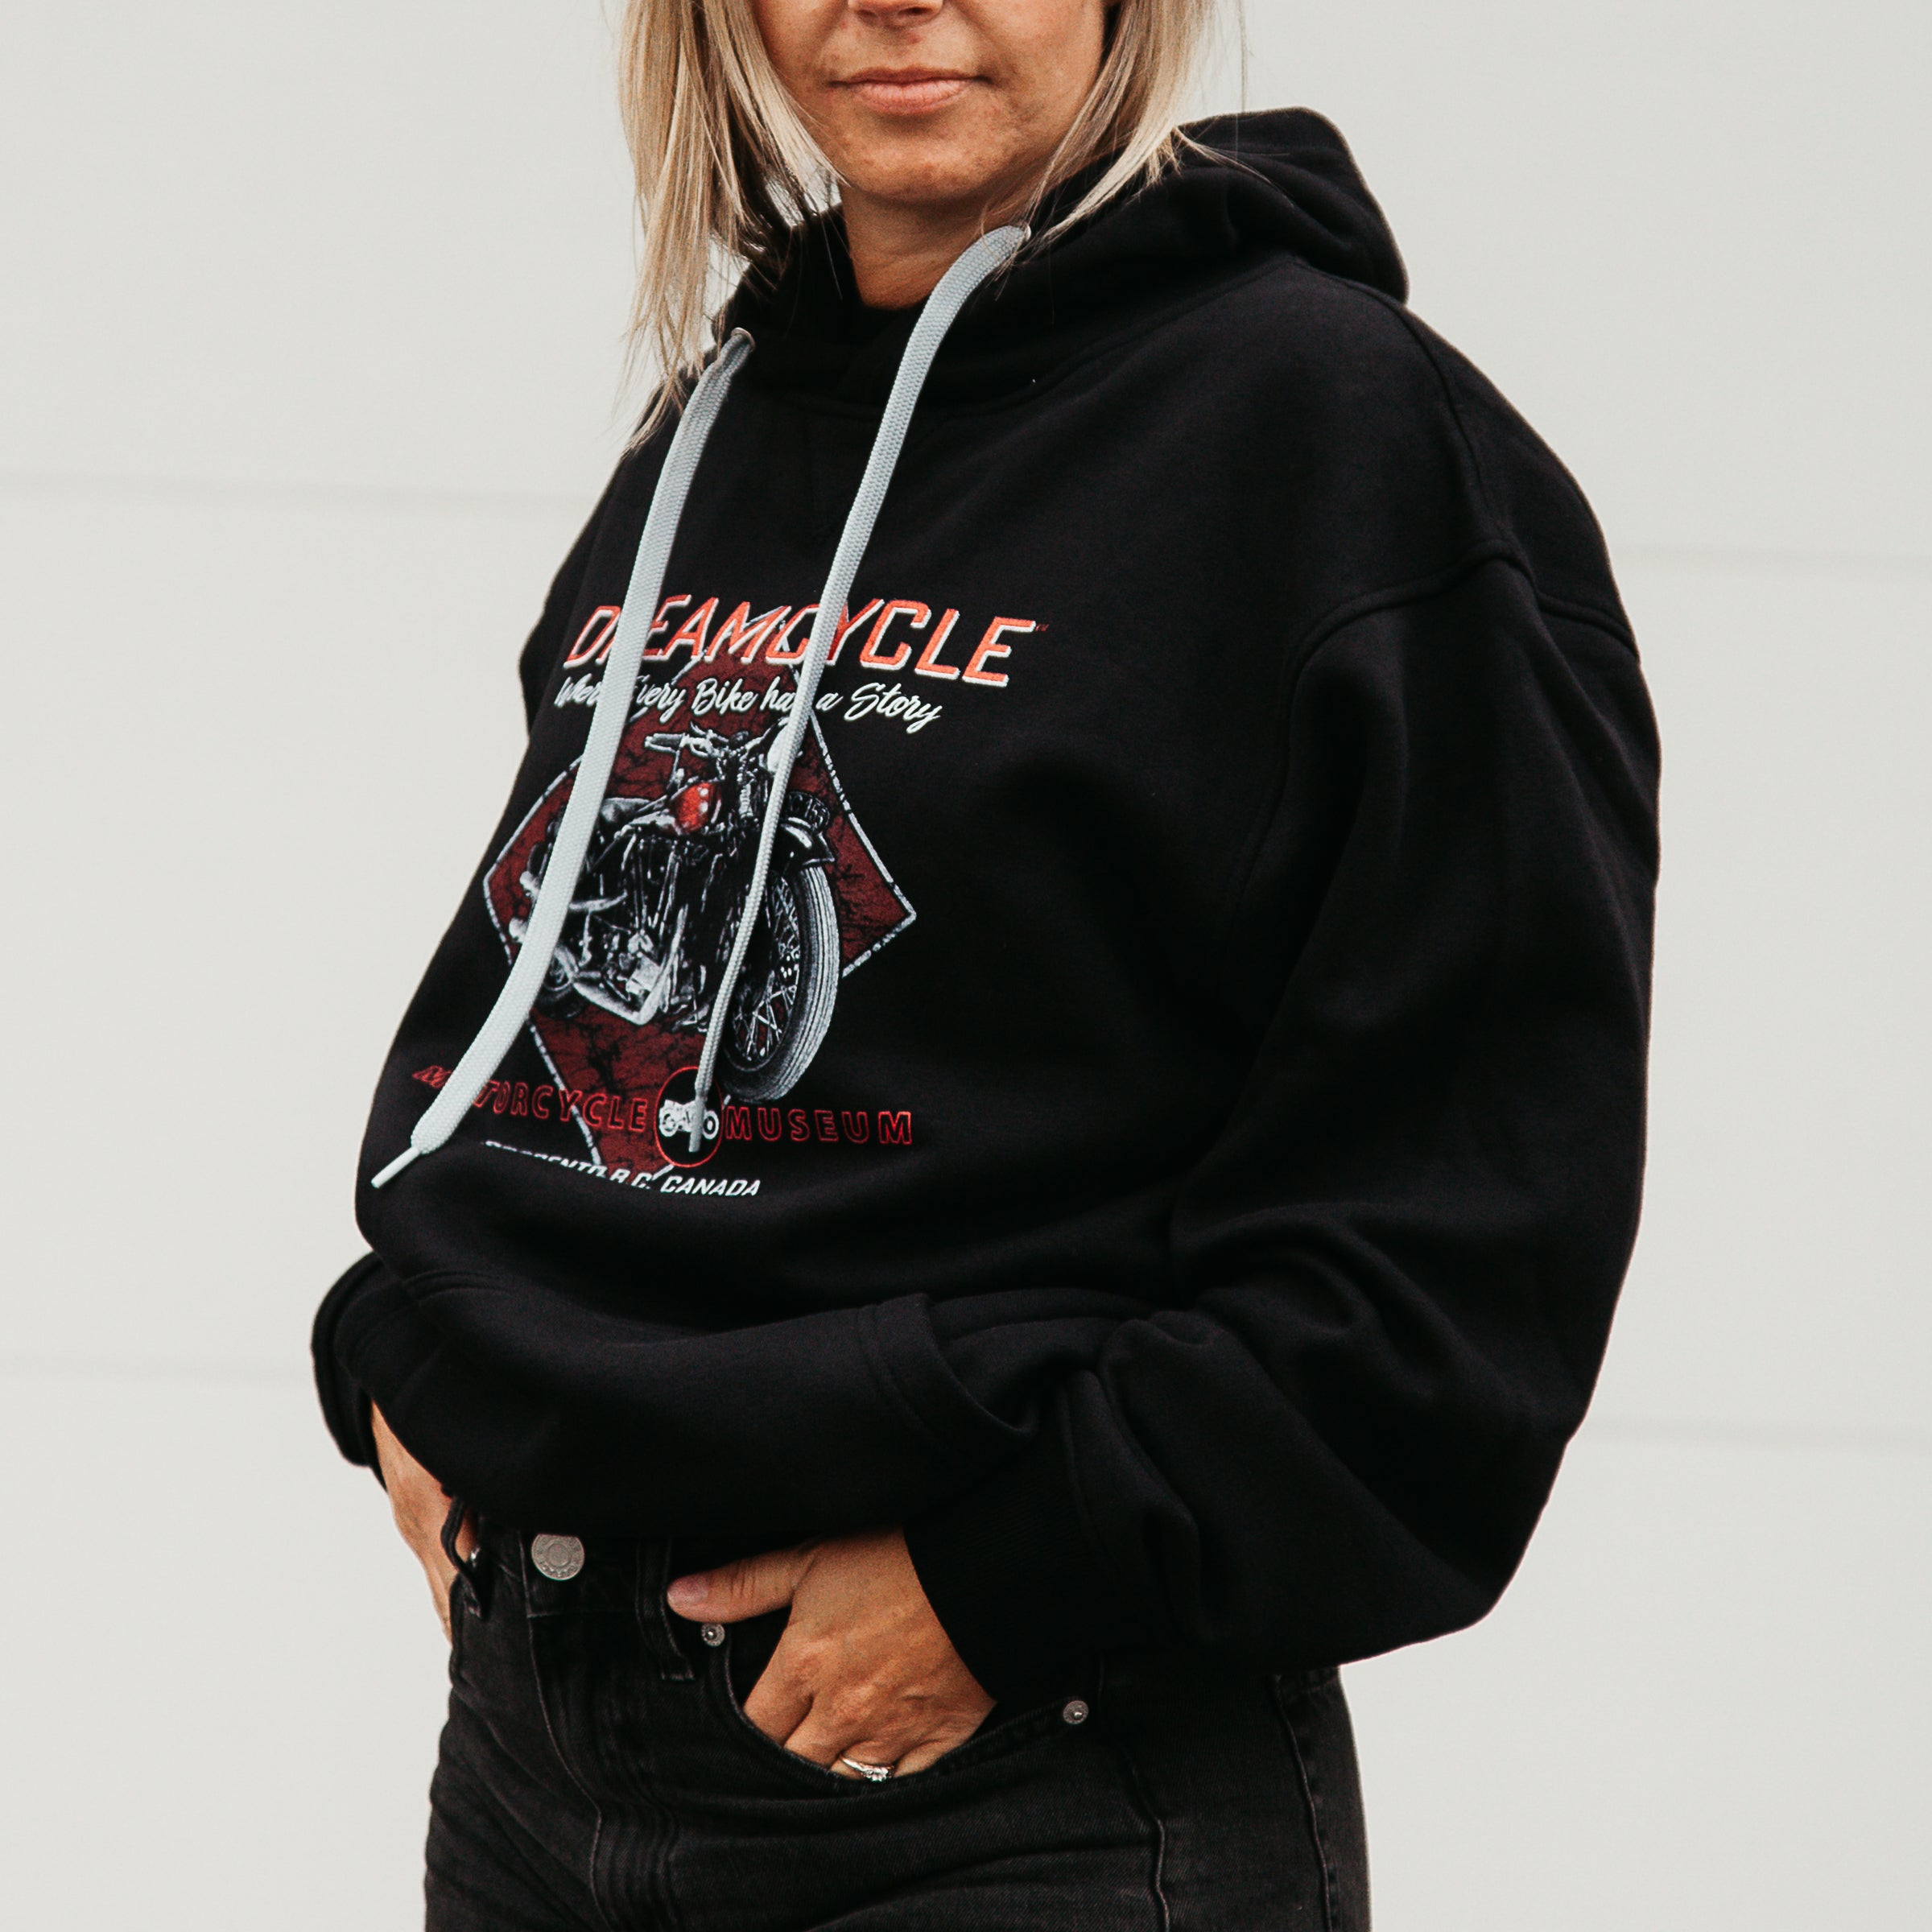 Dreamcycle Motorcycle Museum |  Female modeling black dreamcycle hoodie in a lifestyle environment.